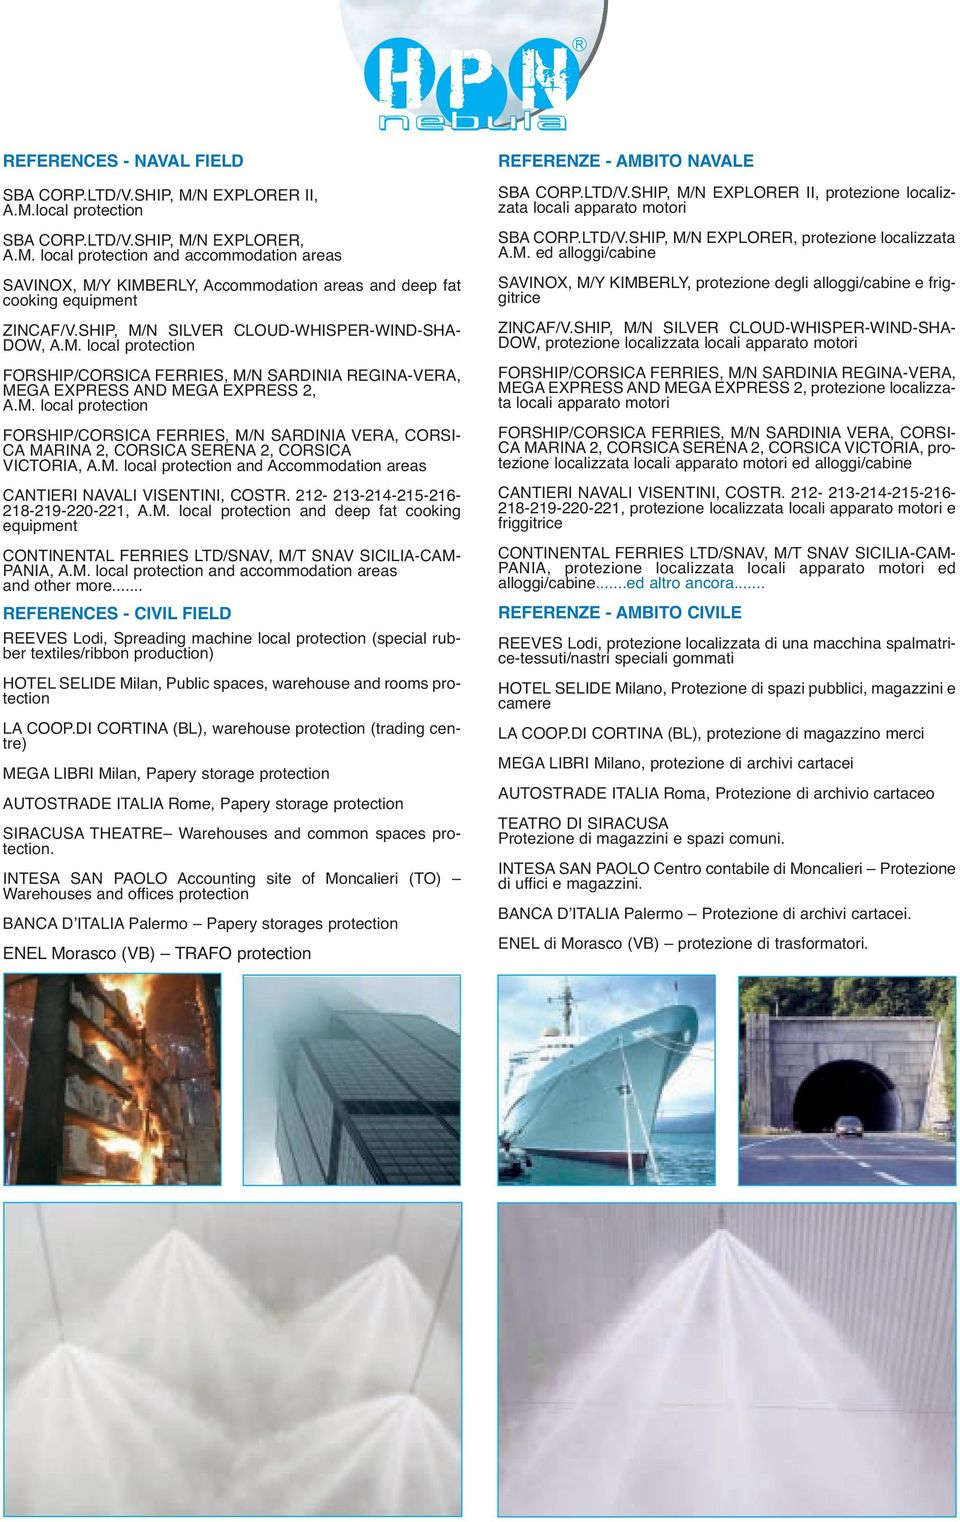 M. local protection and Accommodation areas CANTIERI NAVALI VISENTINI, COSTR. 212-213-214-215-216-218-219-220-221, A.M. local protection and deep fat cooking equipment CONTINENTAL FERRIES LTD/SNAV, M/T SNAV SICILIA-CAM- PANIA, A.